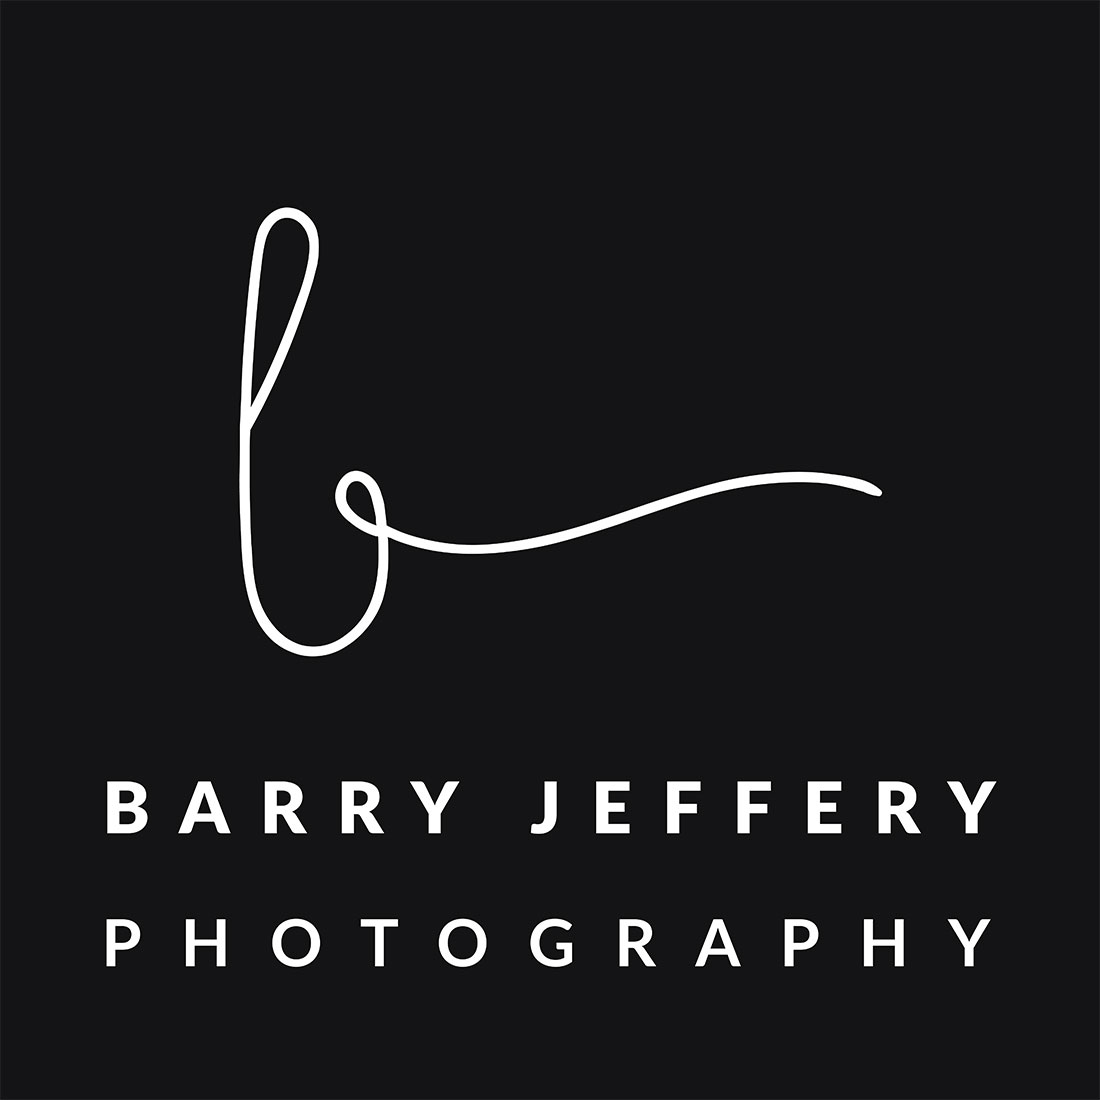 Barry Jeffery Photography